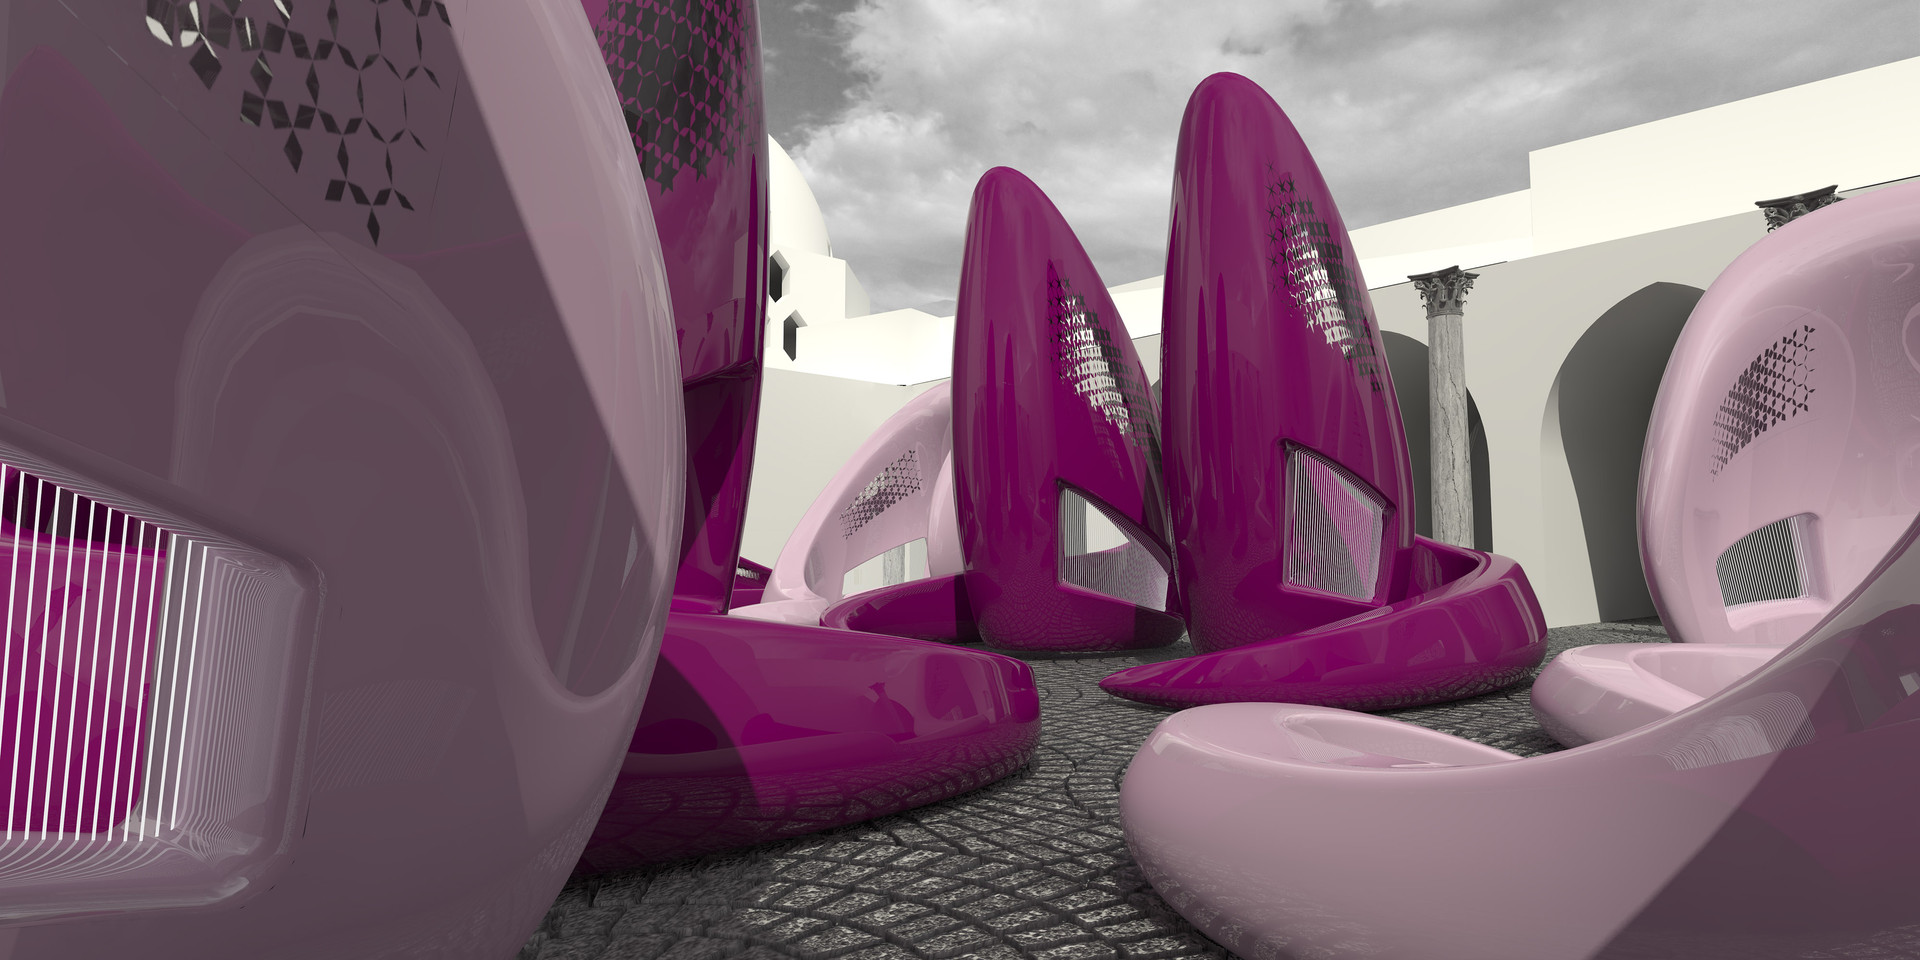 Playscapes Visualization